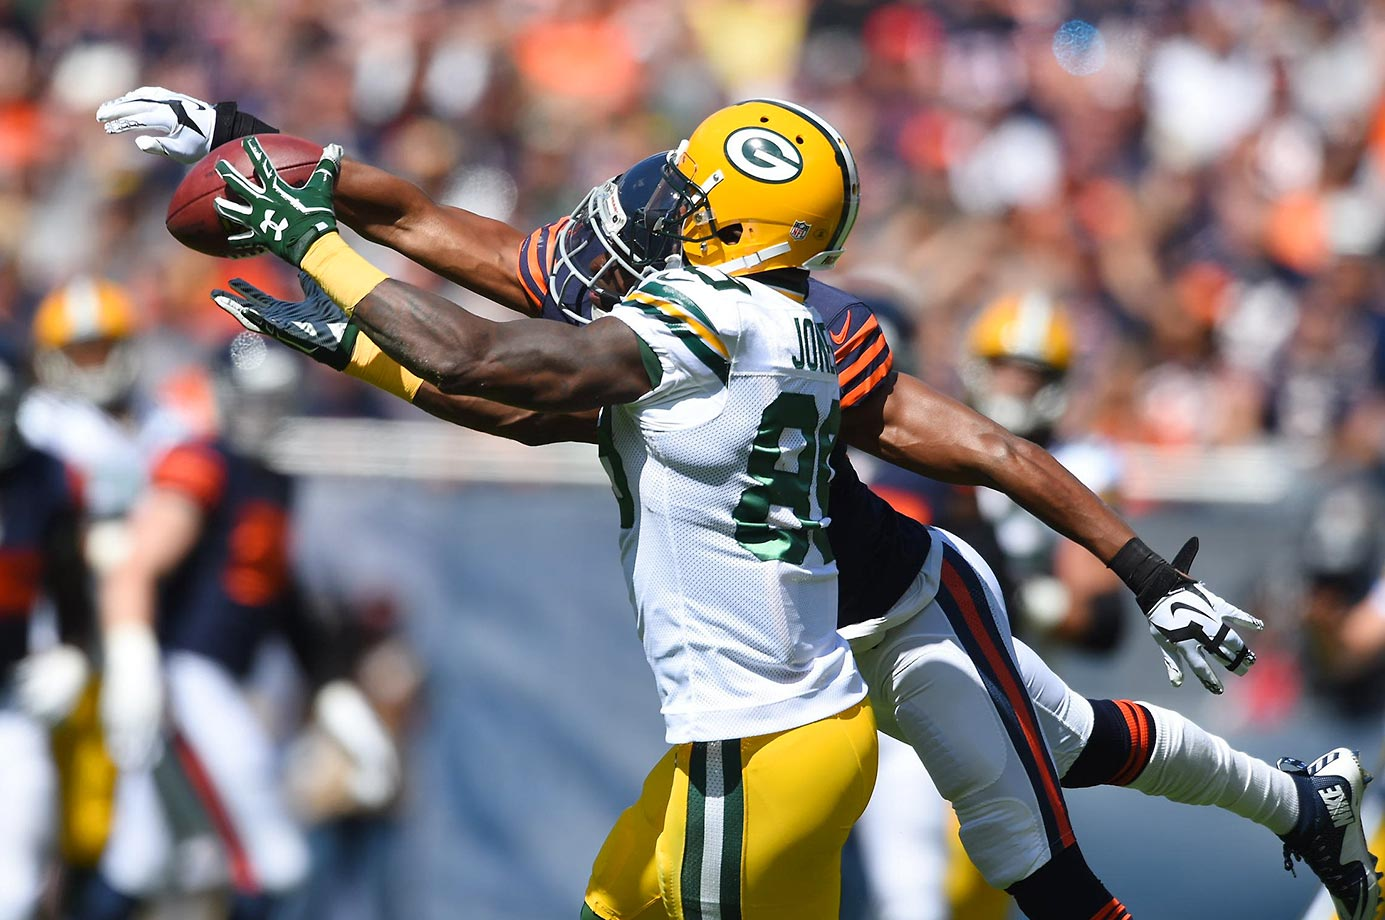 James Jones catches one of his early-season touchdowns.